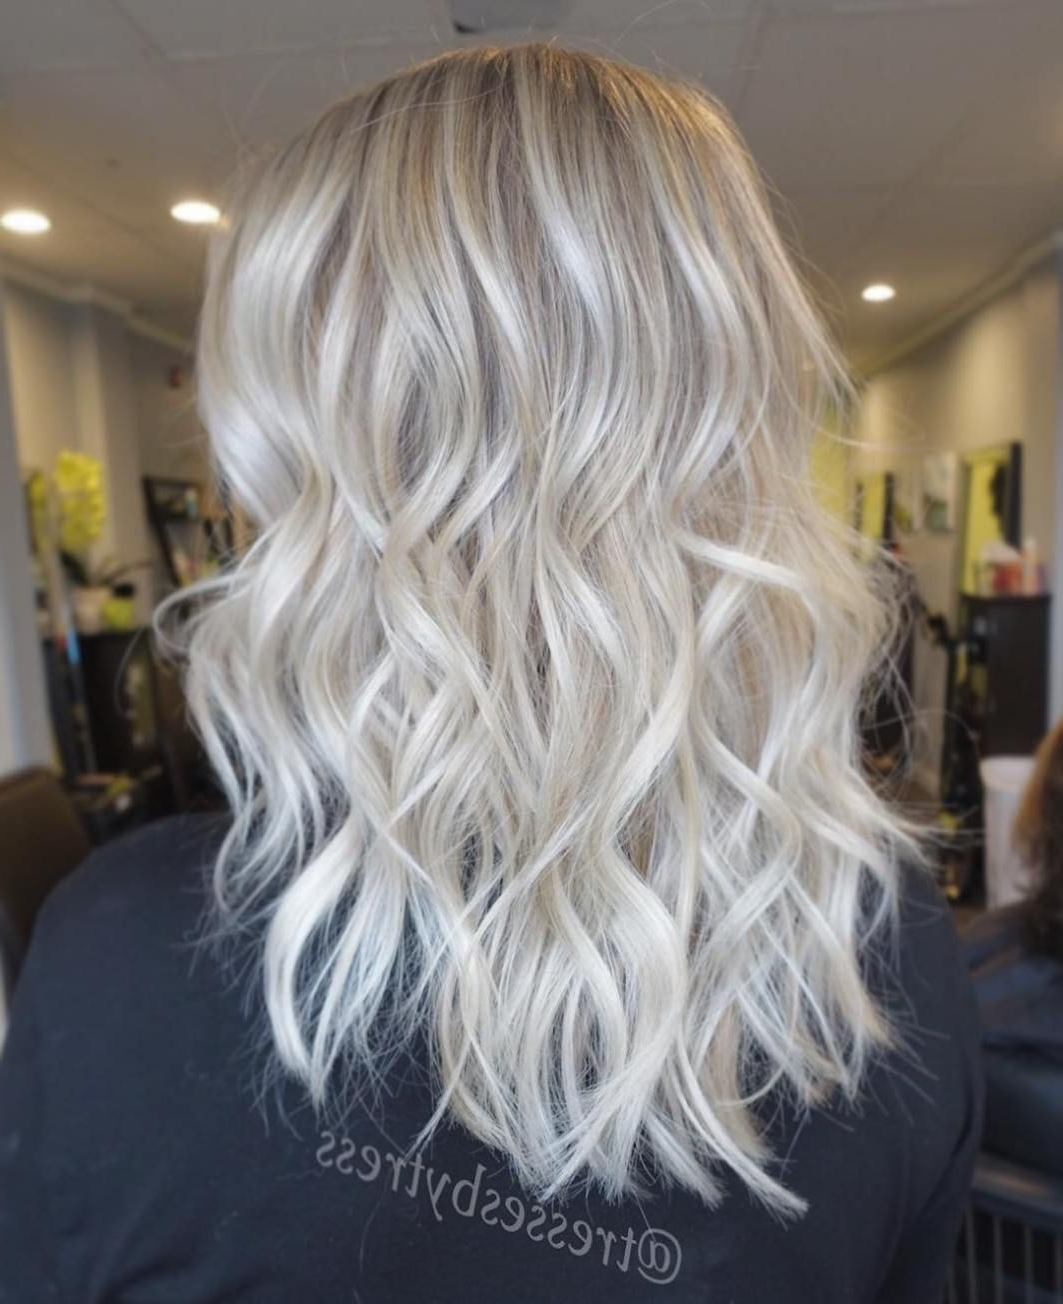 Hair Regarding Famous White Blonde Curls Hairstyles (View 14 of 20)